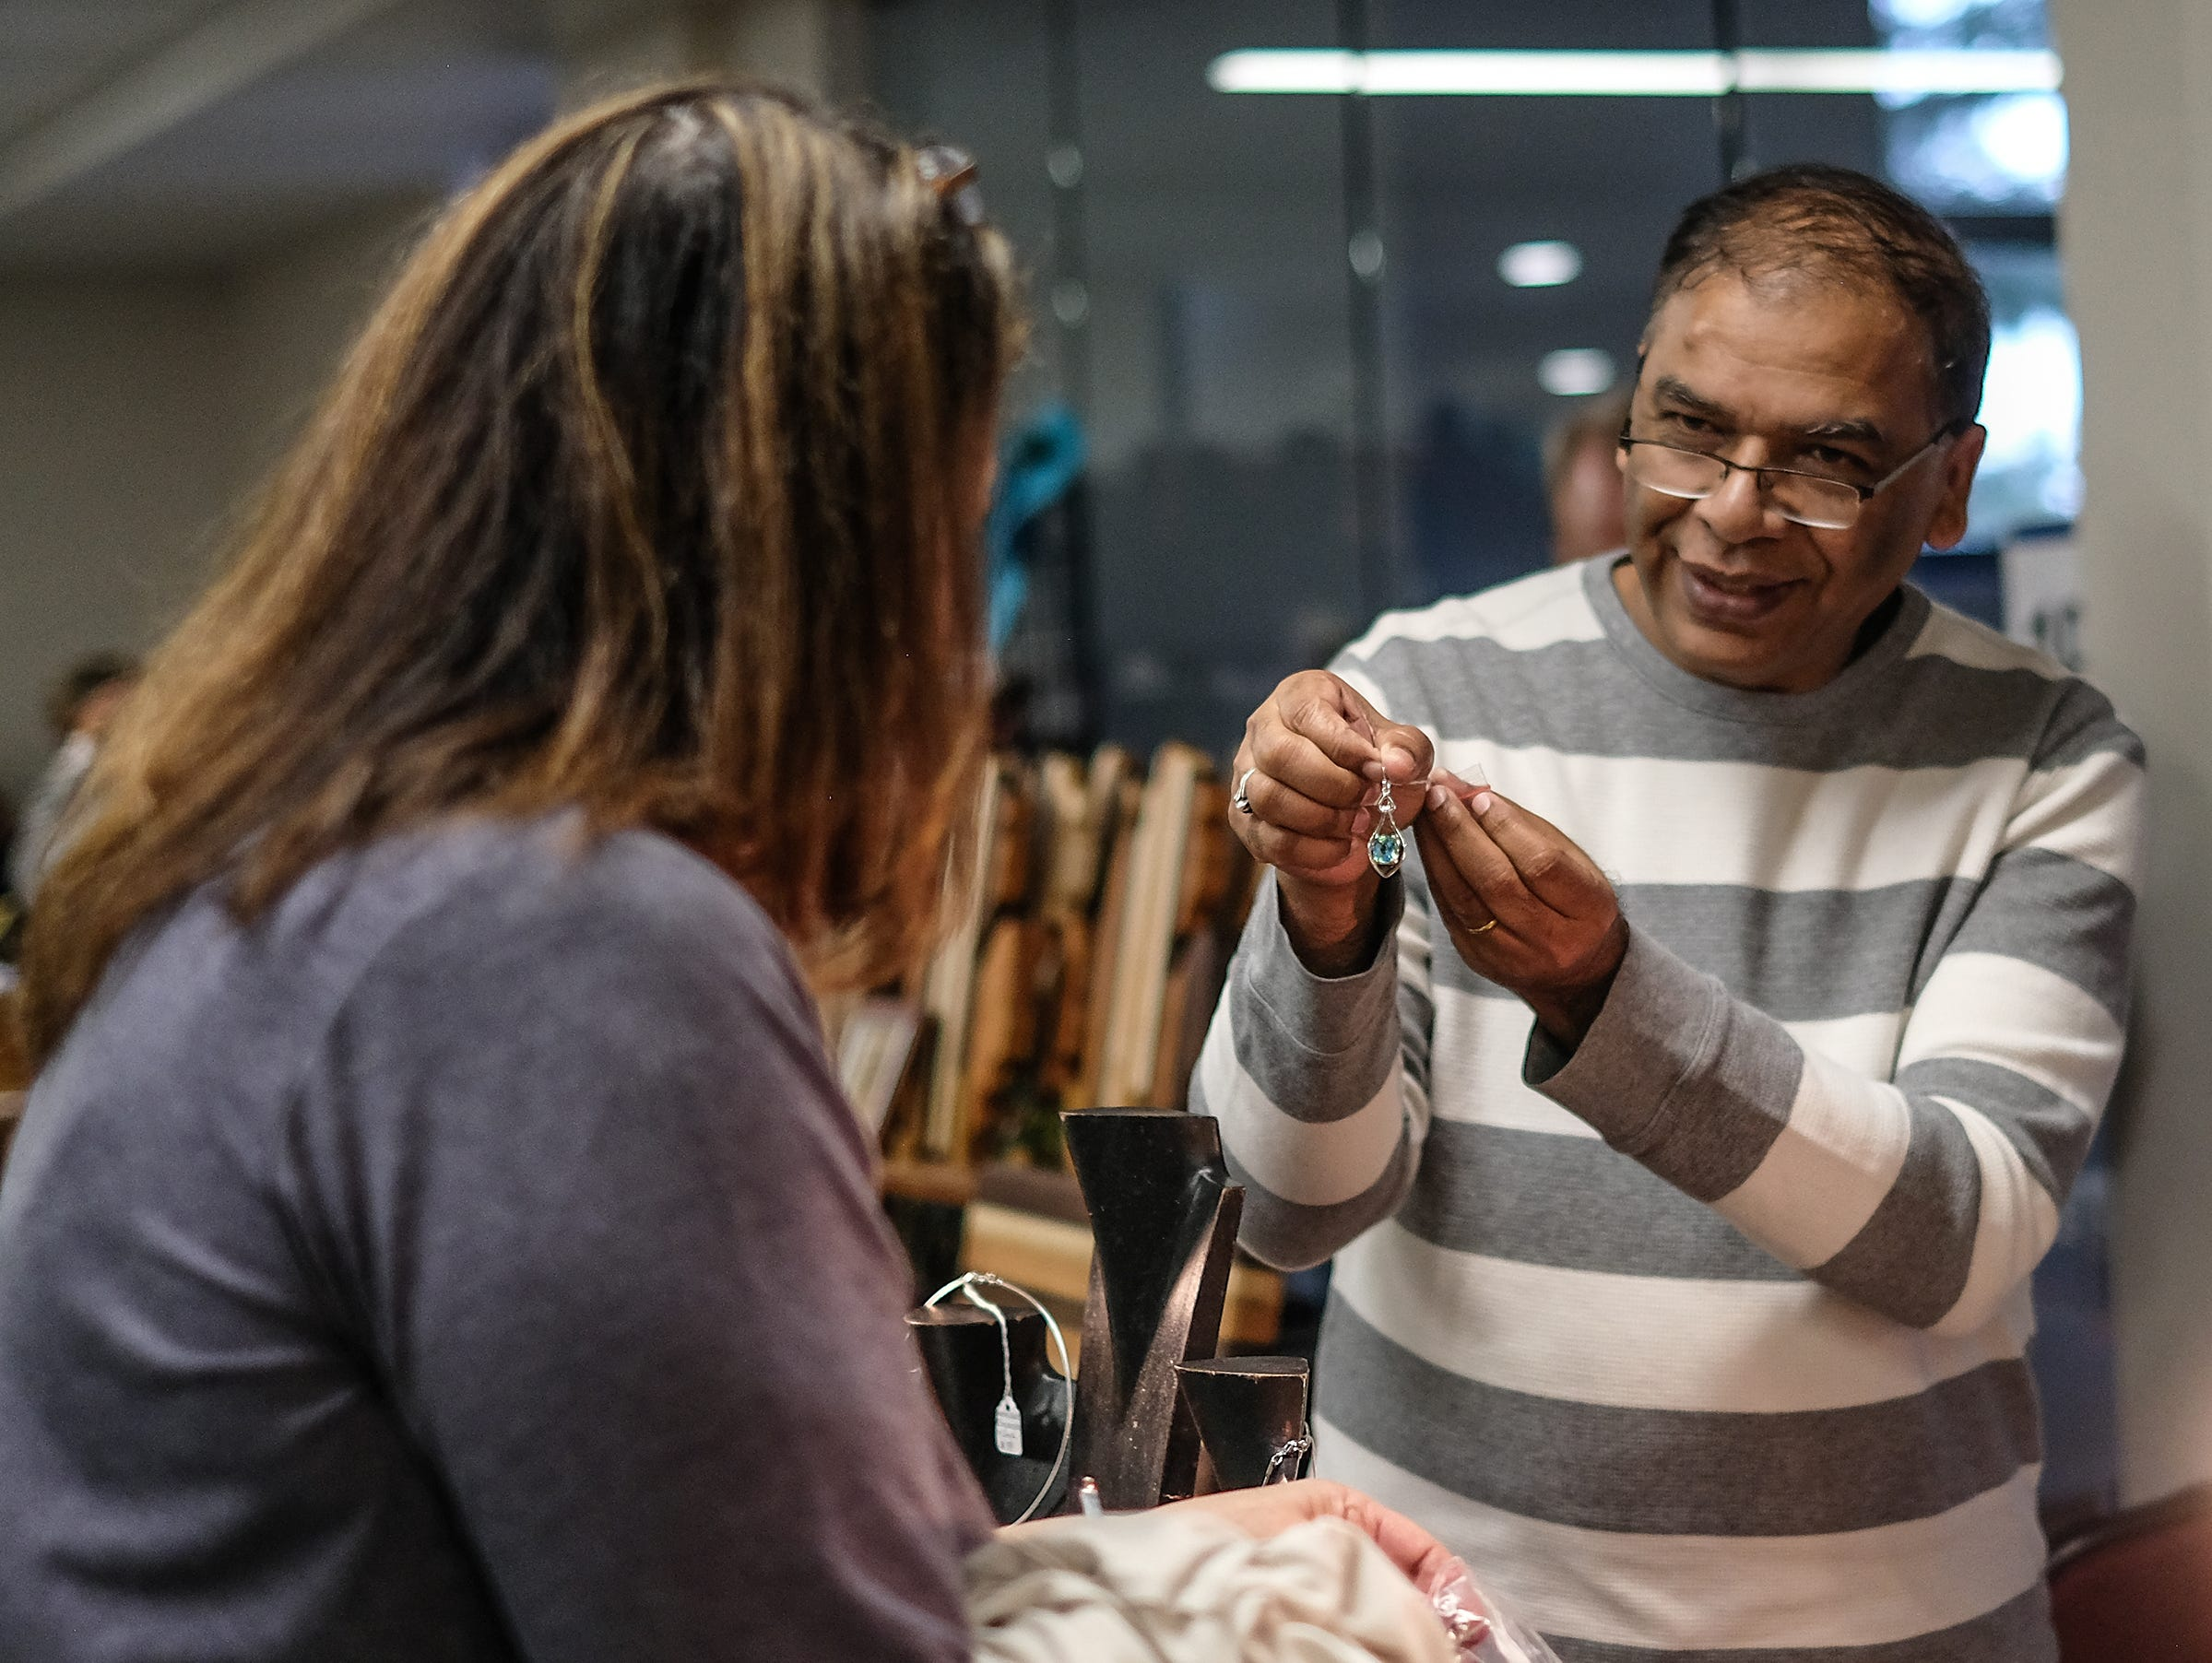 Steven Shaikh of San Martin Design, shows Marilyn Fine from East Lansing some earrings at the MSU Winter Arts & Craft Show Sunday, Dec. 2, 2018. Fine, a regular customer says she has been buying from Shaikn for 16 years at the popular annual event.